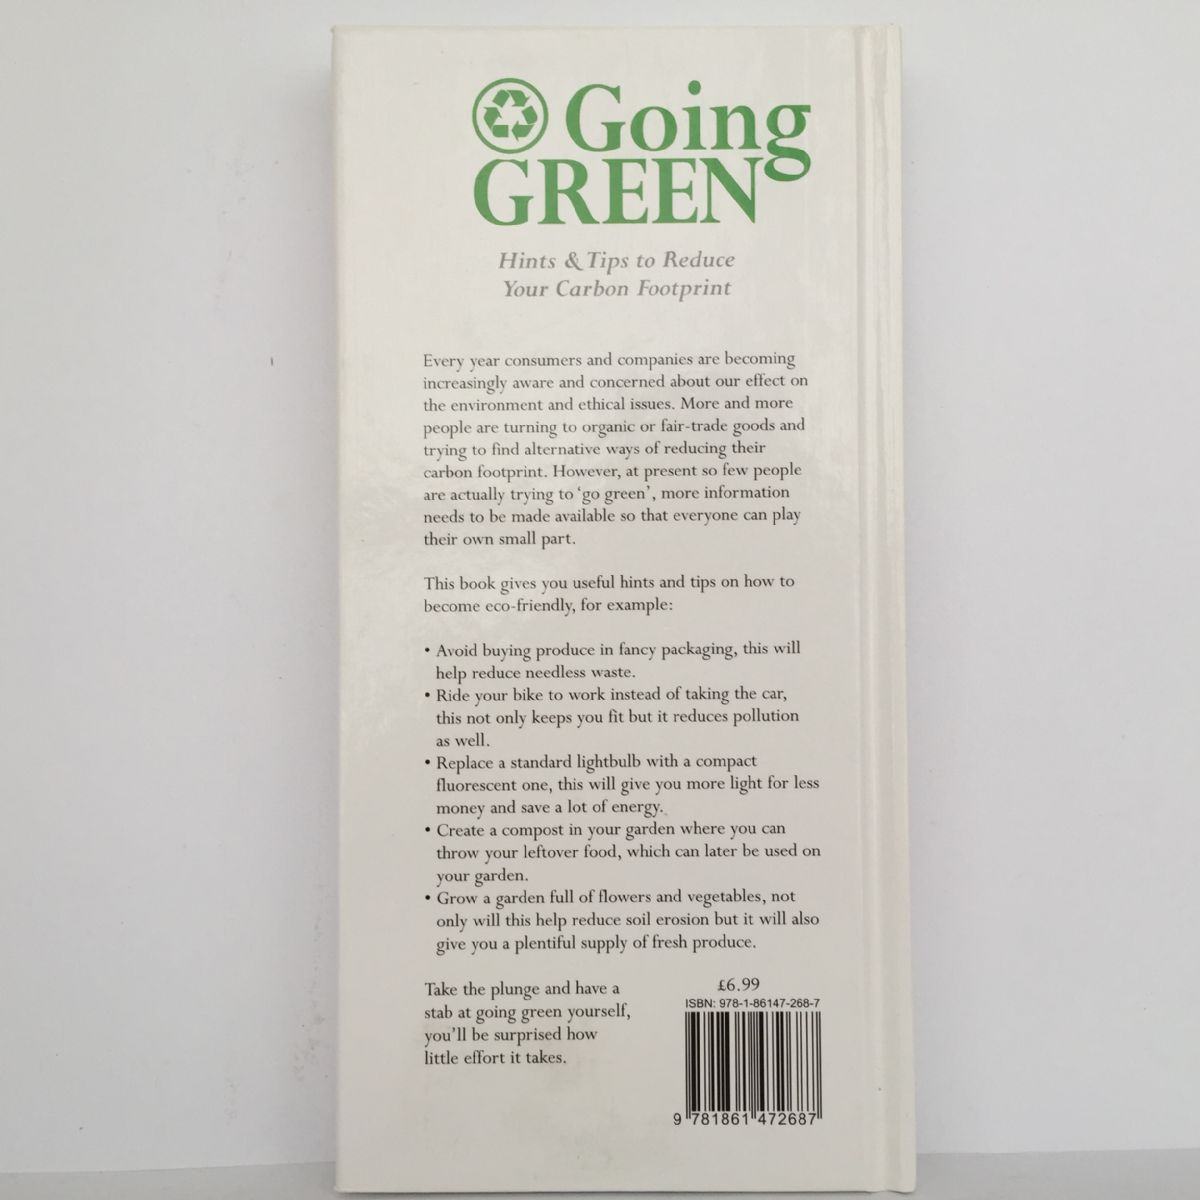 Going Green: Hints & Tips to reduce your Carbon Footprint